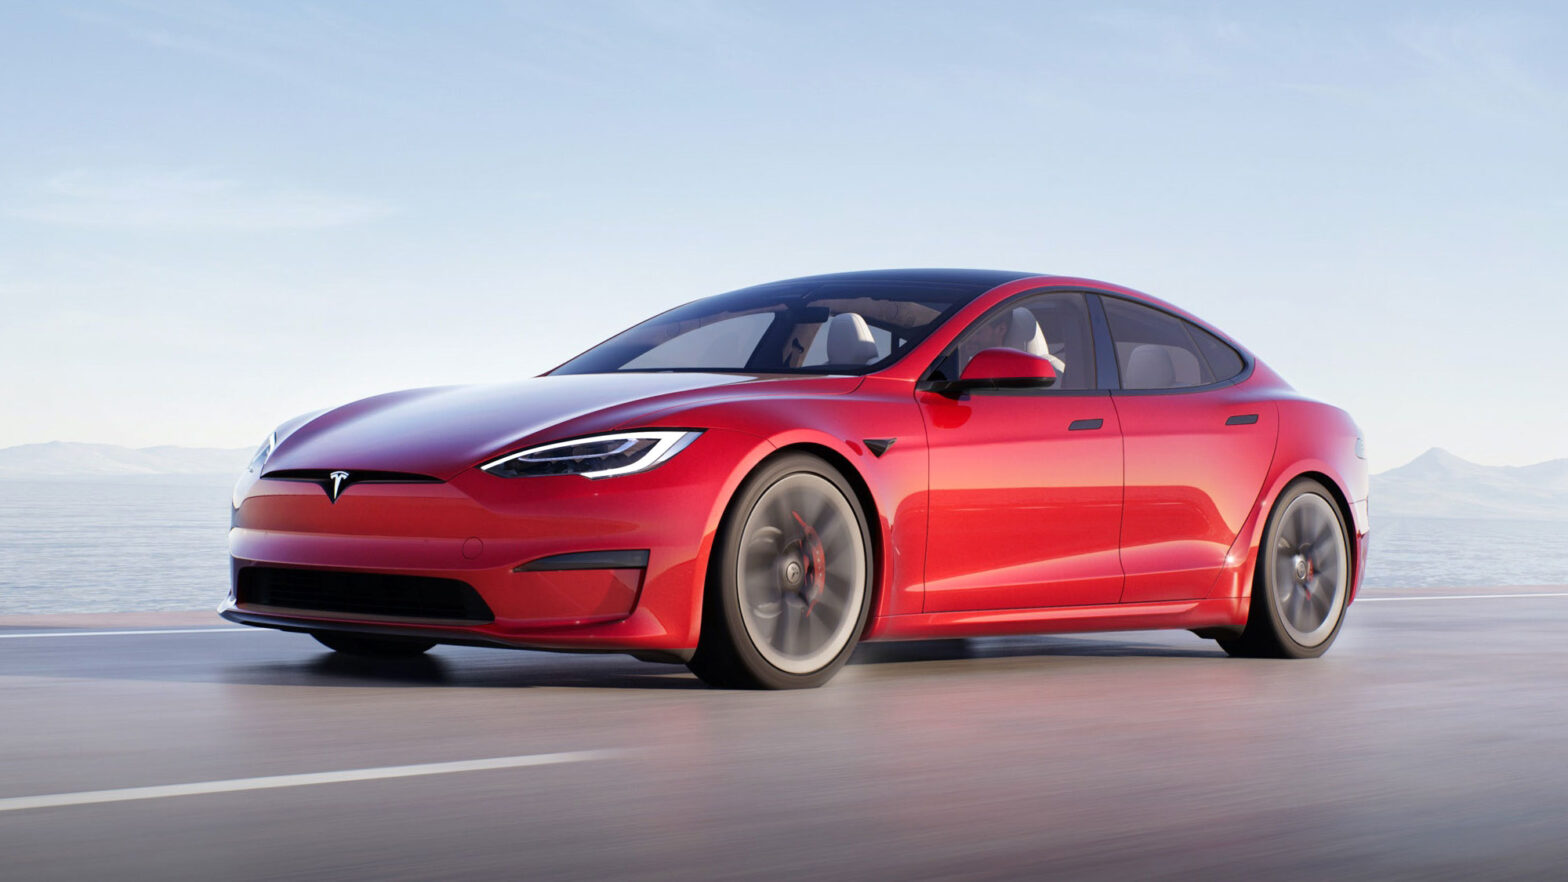 2022 Tesla Model S Electric Vehicle